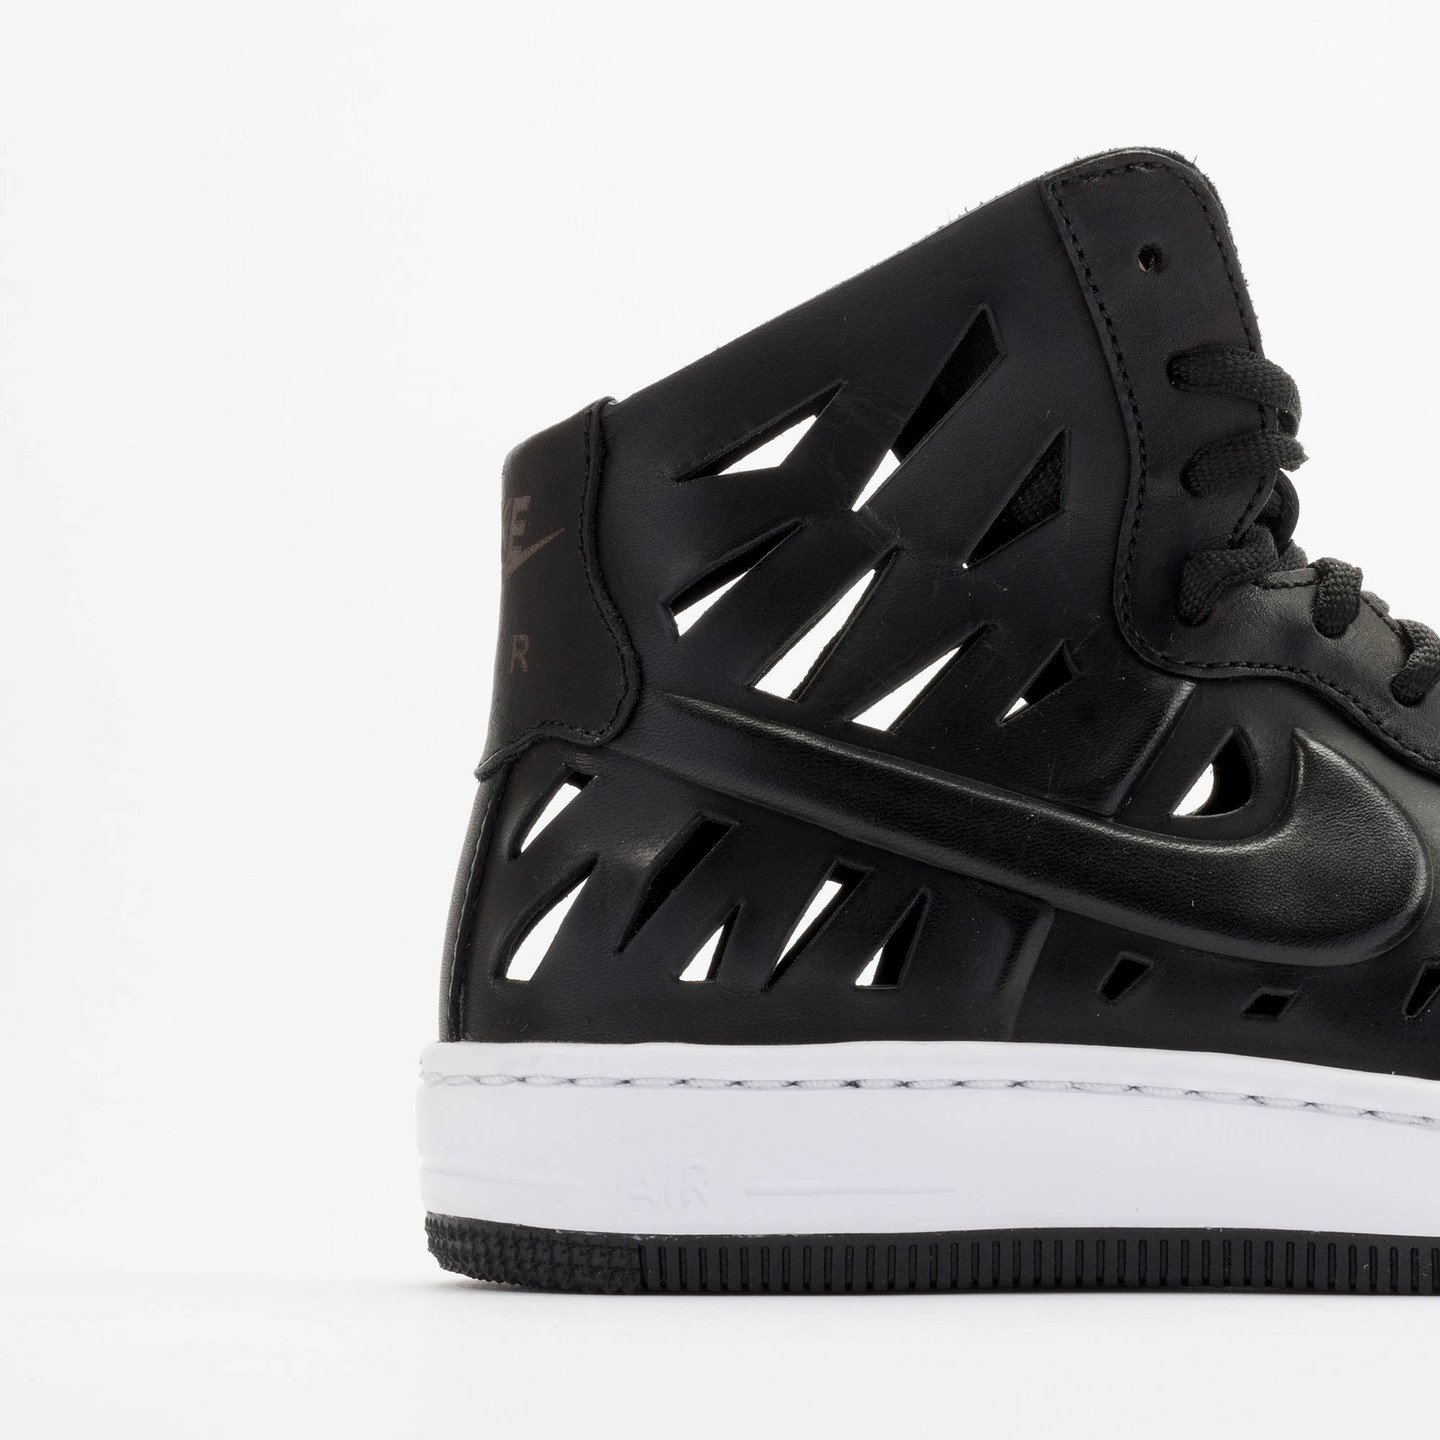 Nike Wmns AF1 Ultra Force Mid Joli Black/Black-White 725075-001-41